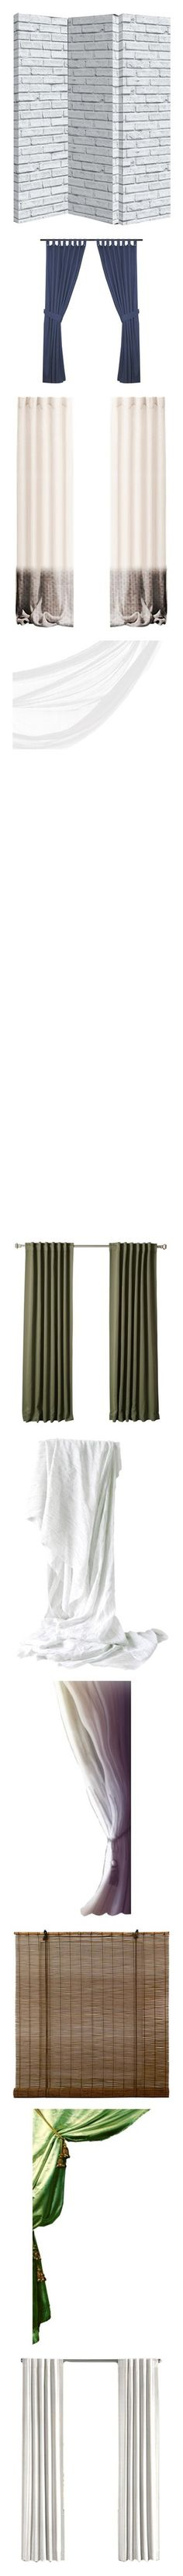 """""""Curtain Panel #2 Shutters"""" by suelb ❤ liked on Polyvore featuring home, home decor, panel screens, white home decor, white home accessories, folding room dividers, window treatments, curtains, transparent curtains and sheer window coverings"""